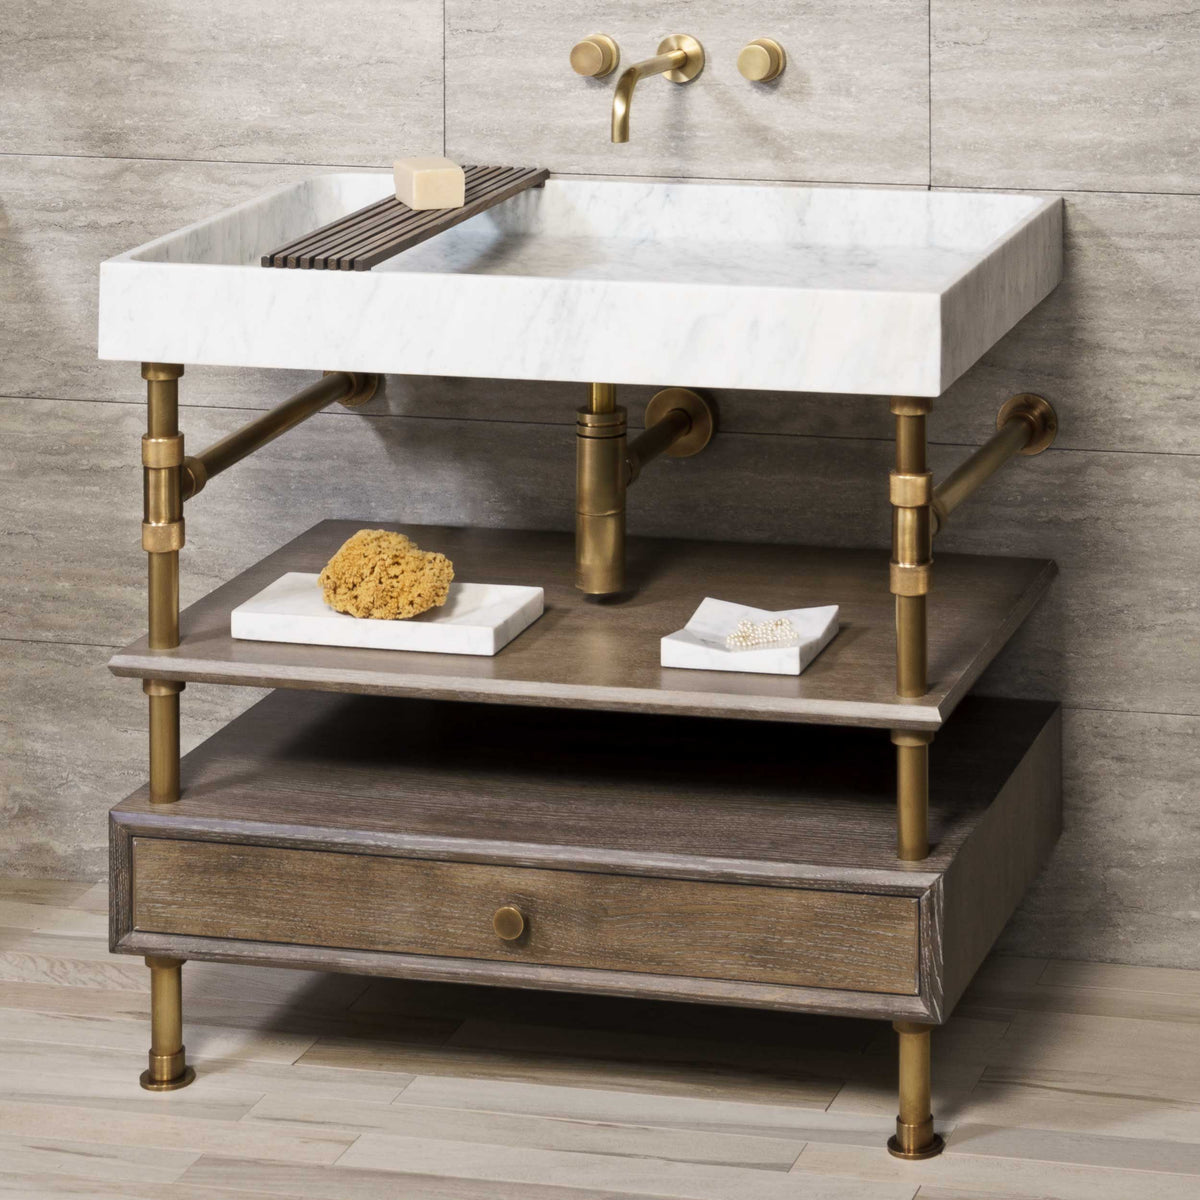 Ventus Bath Sink with Elemental Console Vanity